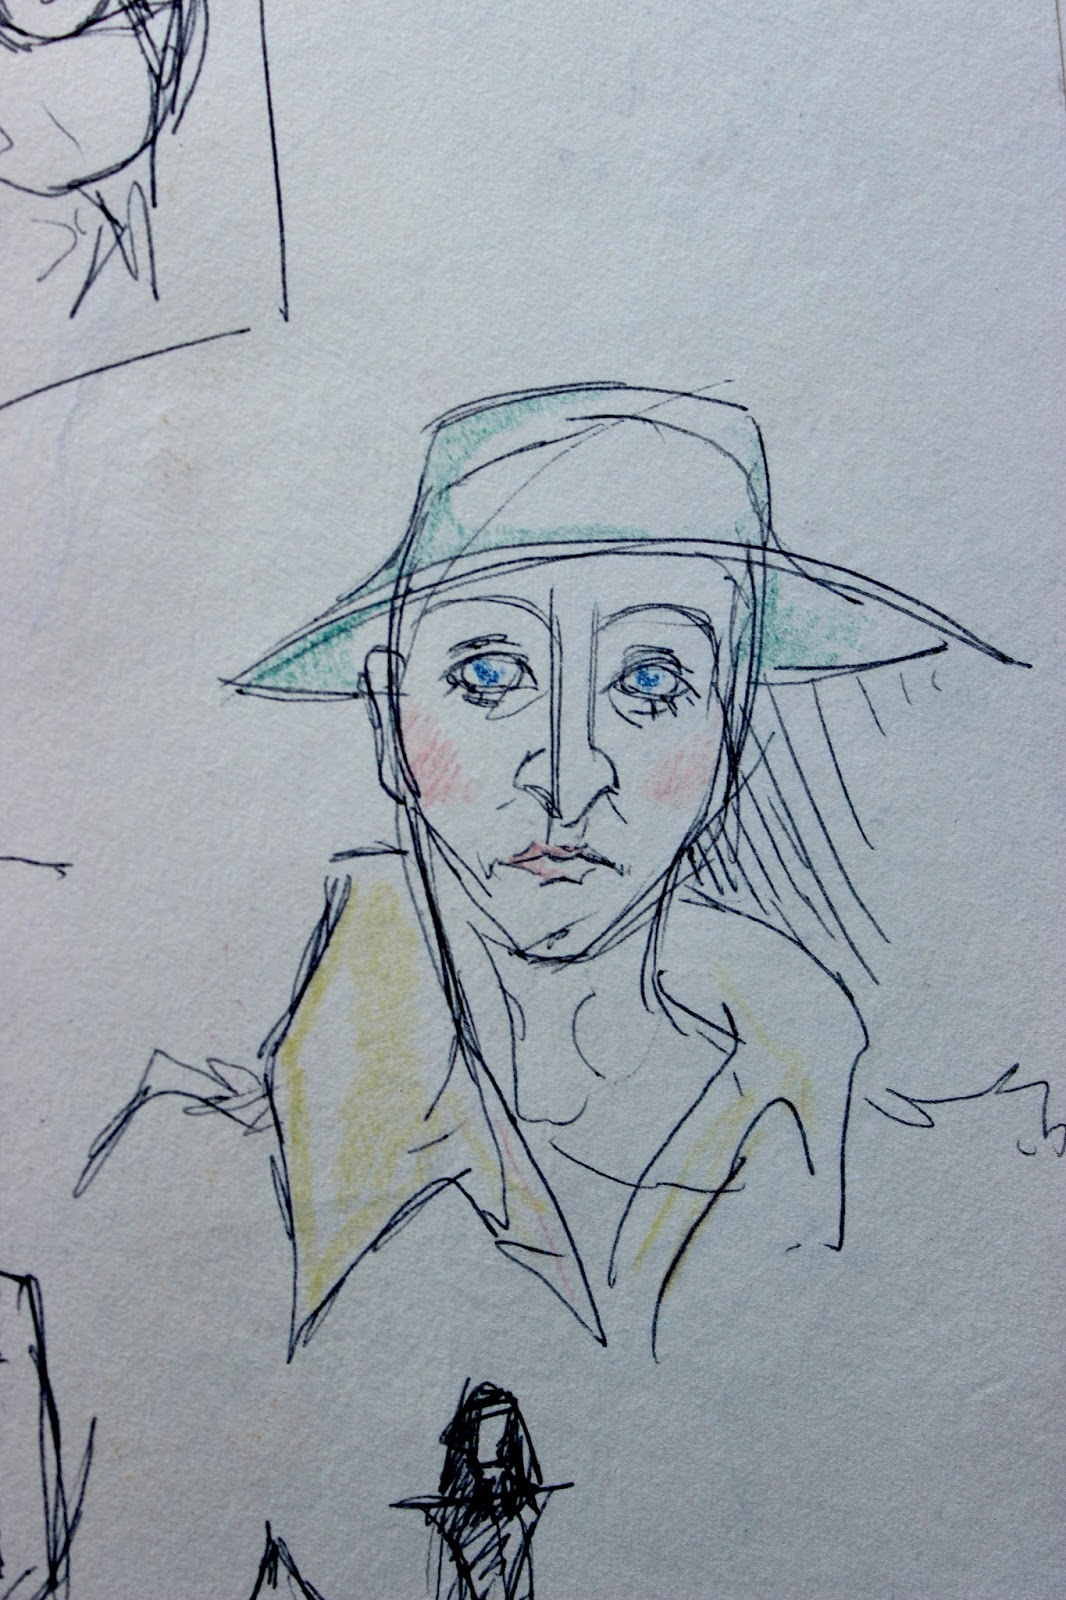 Drawing Sketch Illustration Pencil Sketchpad Notebook Colour Character Man Hat